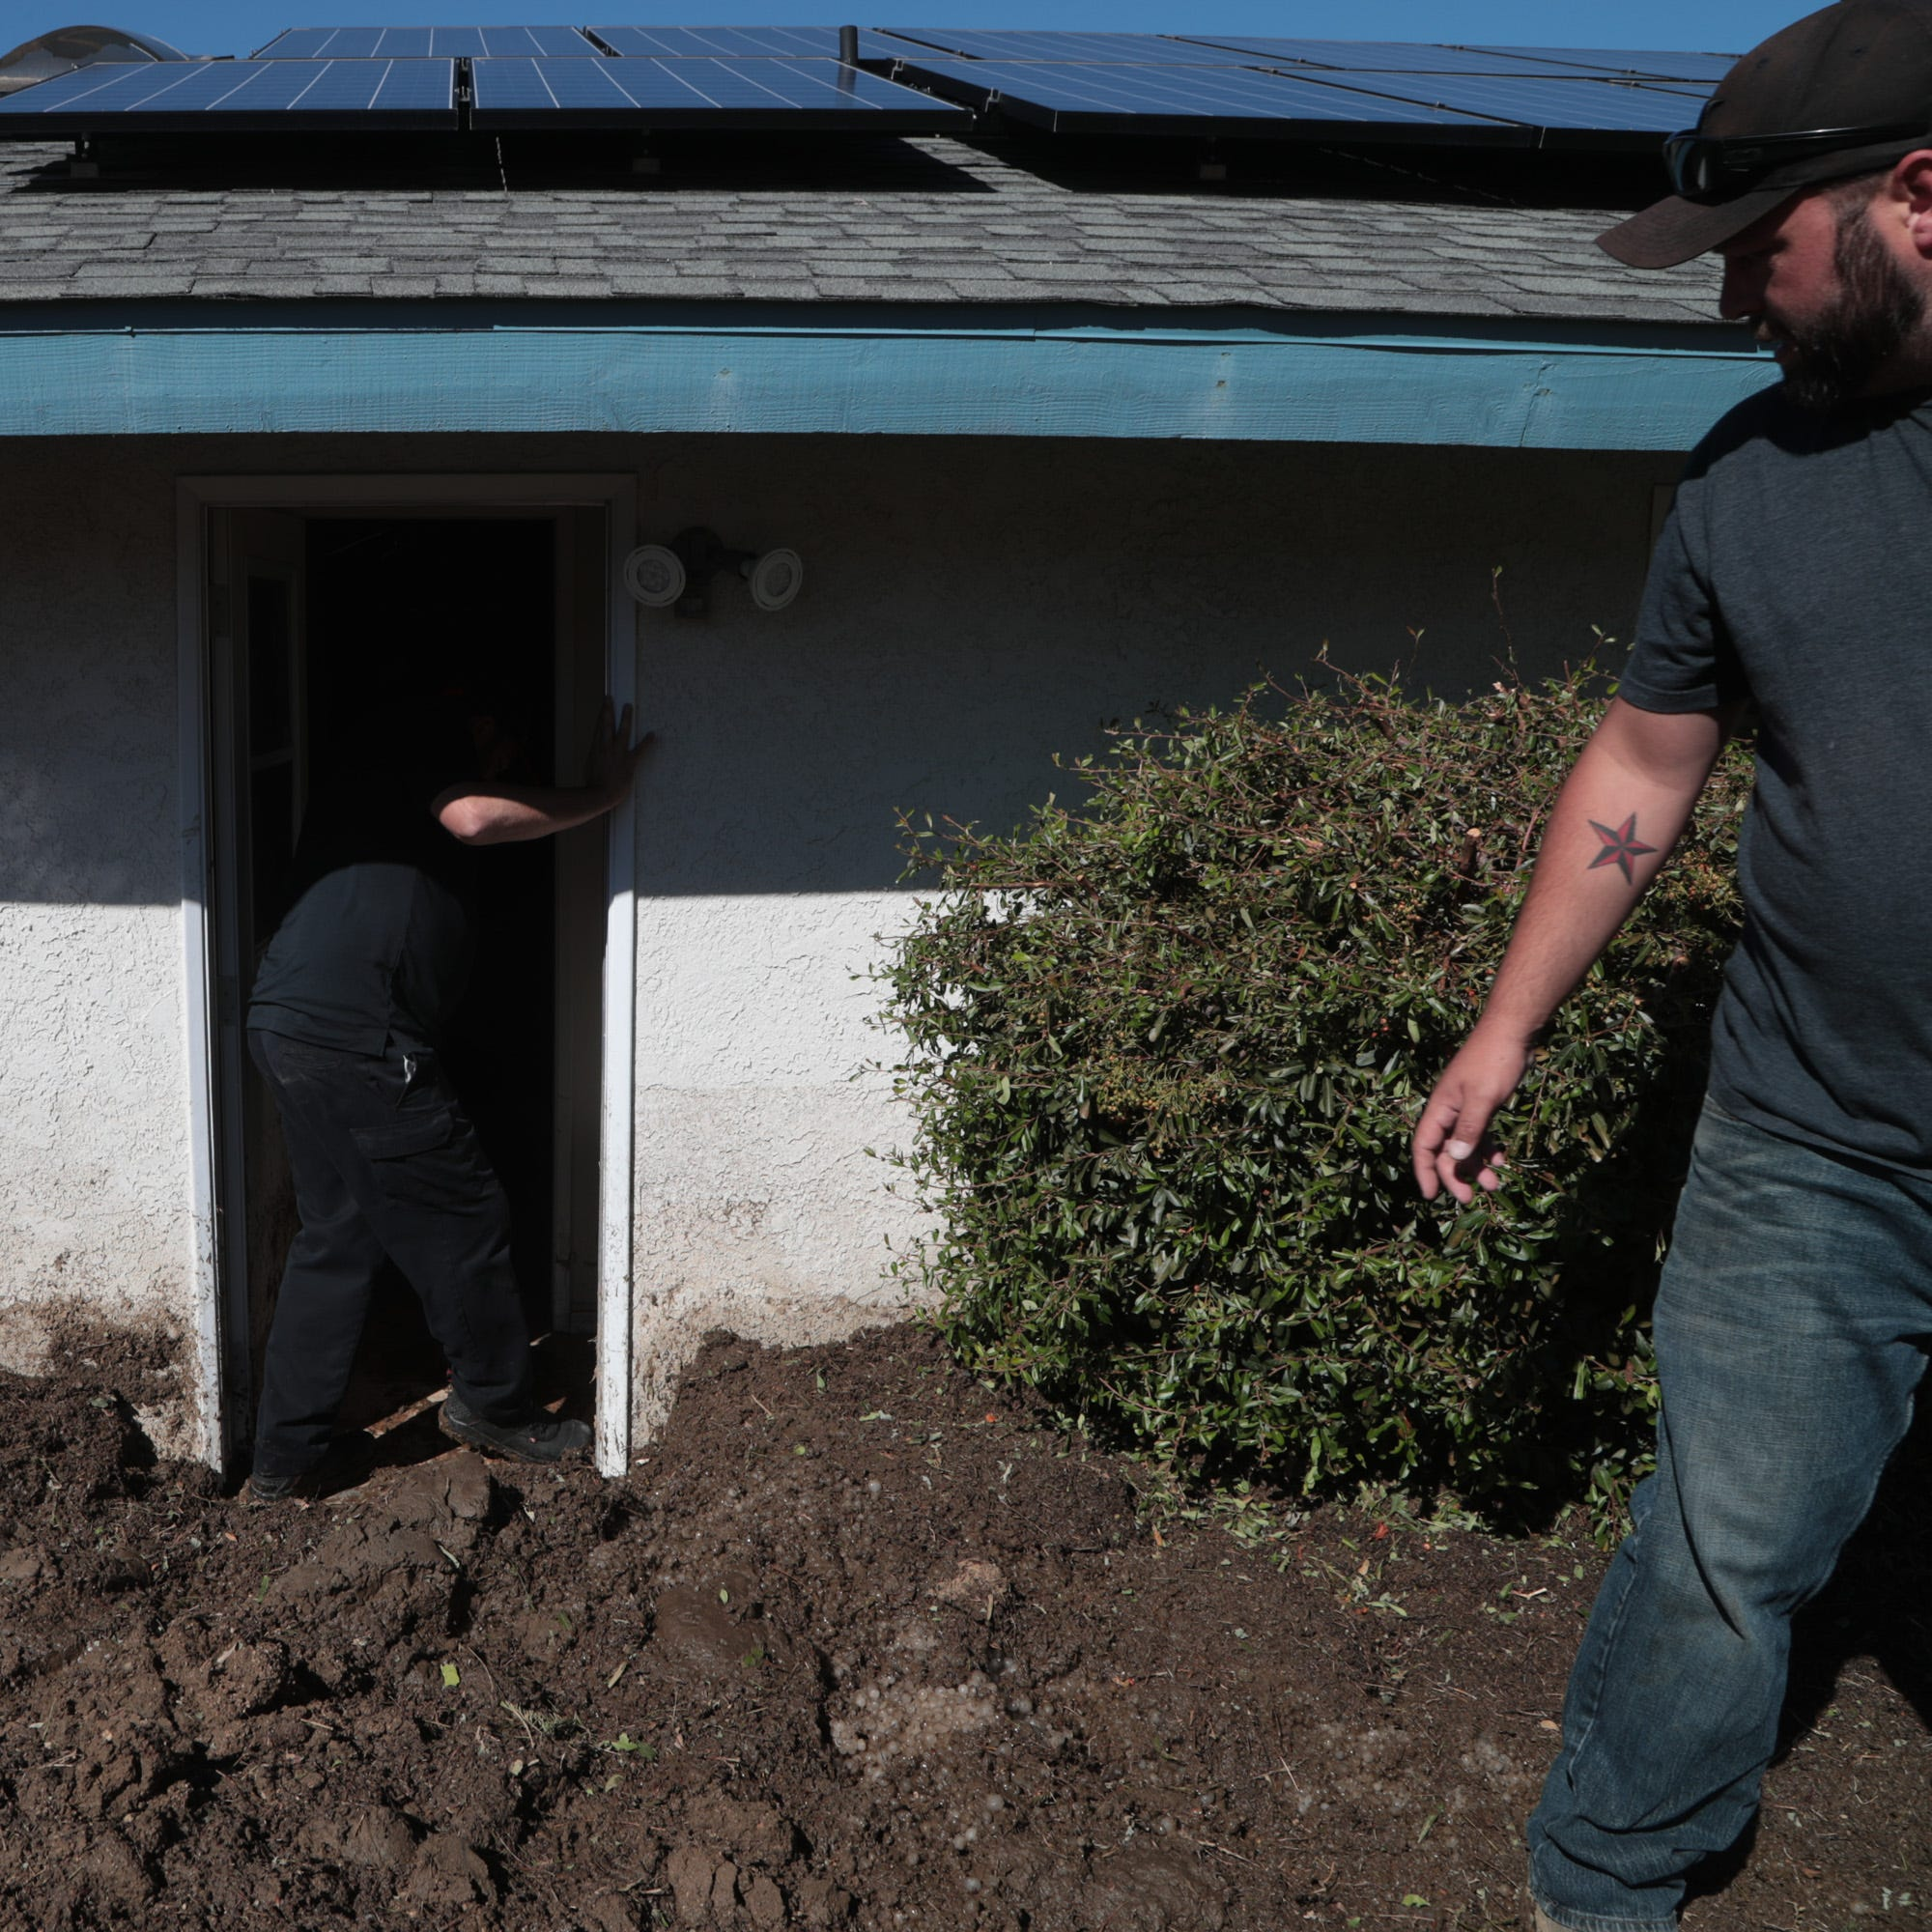 Rivers of mud ripped open deadbolts, flooded homes: Joshua Tree neighborhood recovers from storm